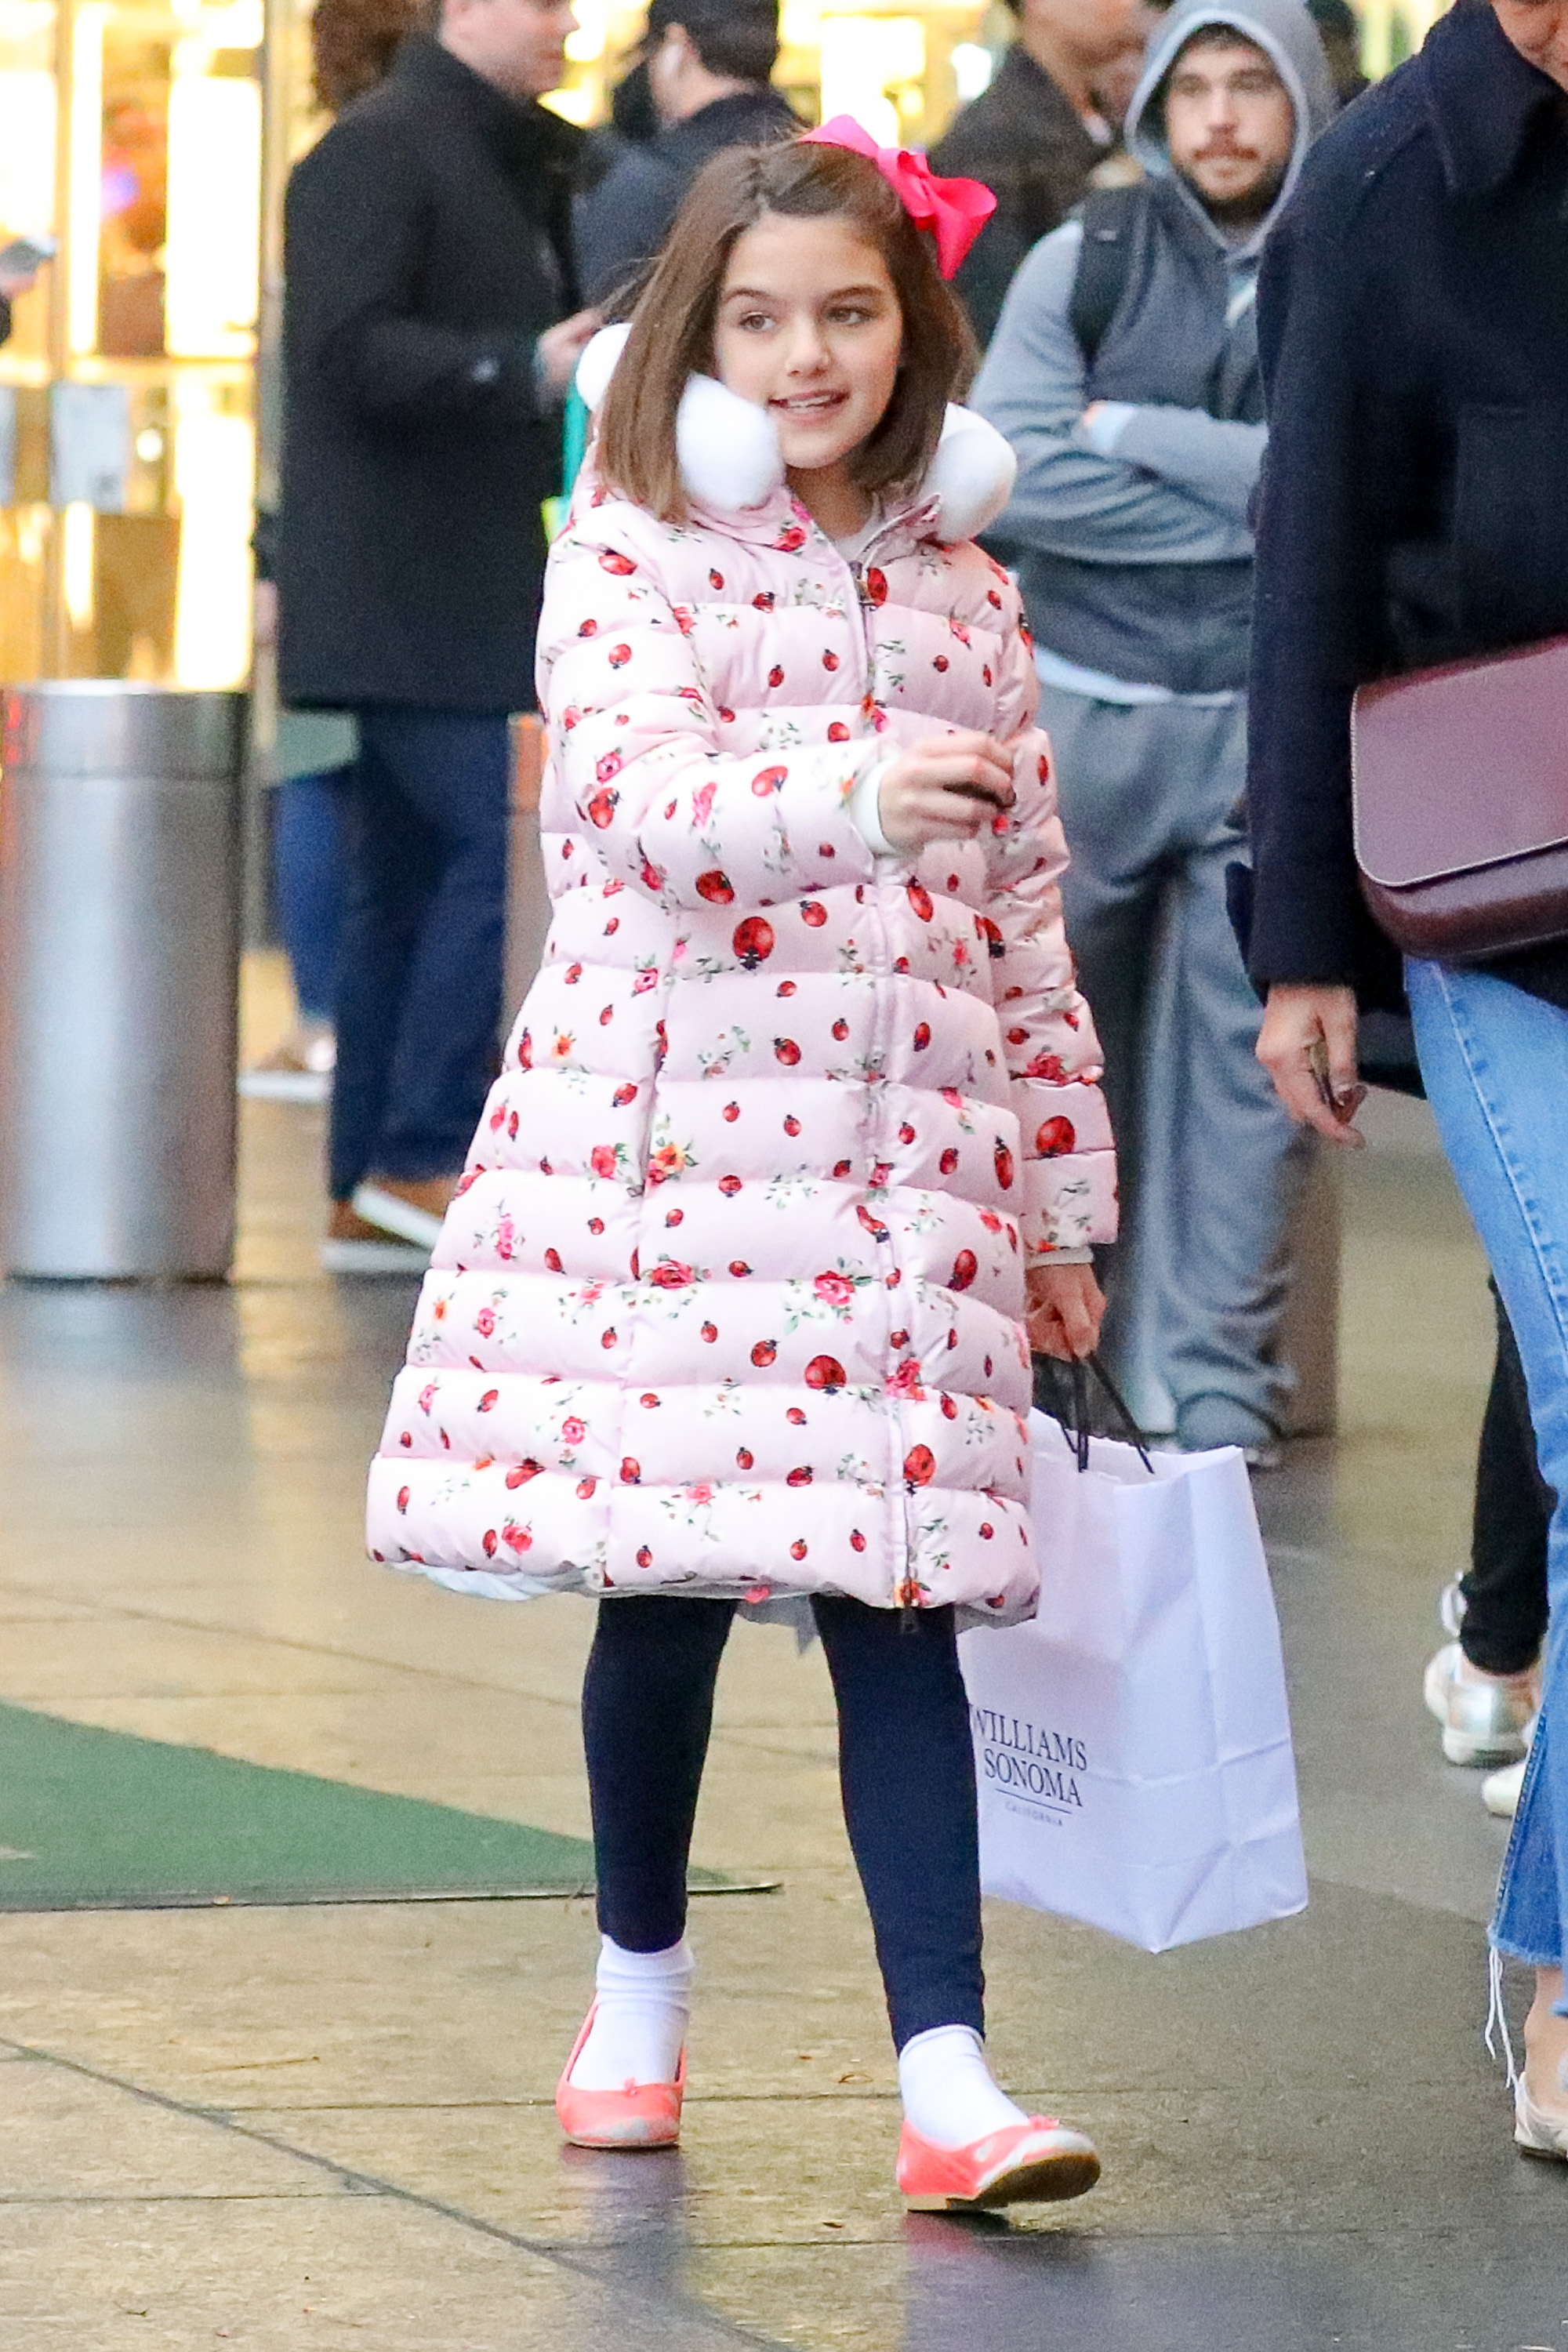 EXCLUSIVE: Suri Cruise wore Dolce & Gabbana Ladybug Puffer Jacket while out shopping with her mom Katie in Columbus Circle in NYC <P> Pictured: Suri Cruise <B>Ref: SPL1632744  041217   EXCLUSIVE</B><BR/> Picture by: Felipe Ramales / Splash News<BR/> </P><P> <B>Splash News and Pictures</B><BR/> Los Angeles:310-821-2666<BR/> New York:212-619-2666<BR/> London:870-934-2666<BR/> <span id=